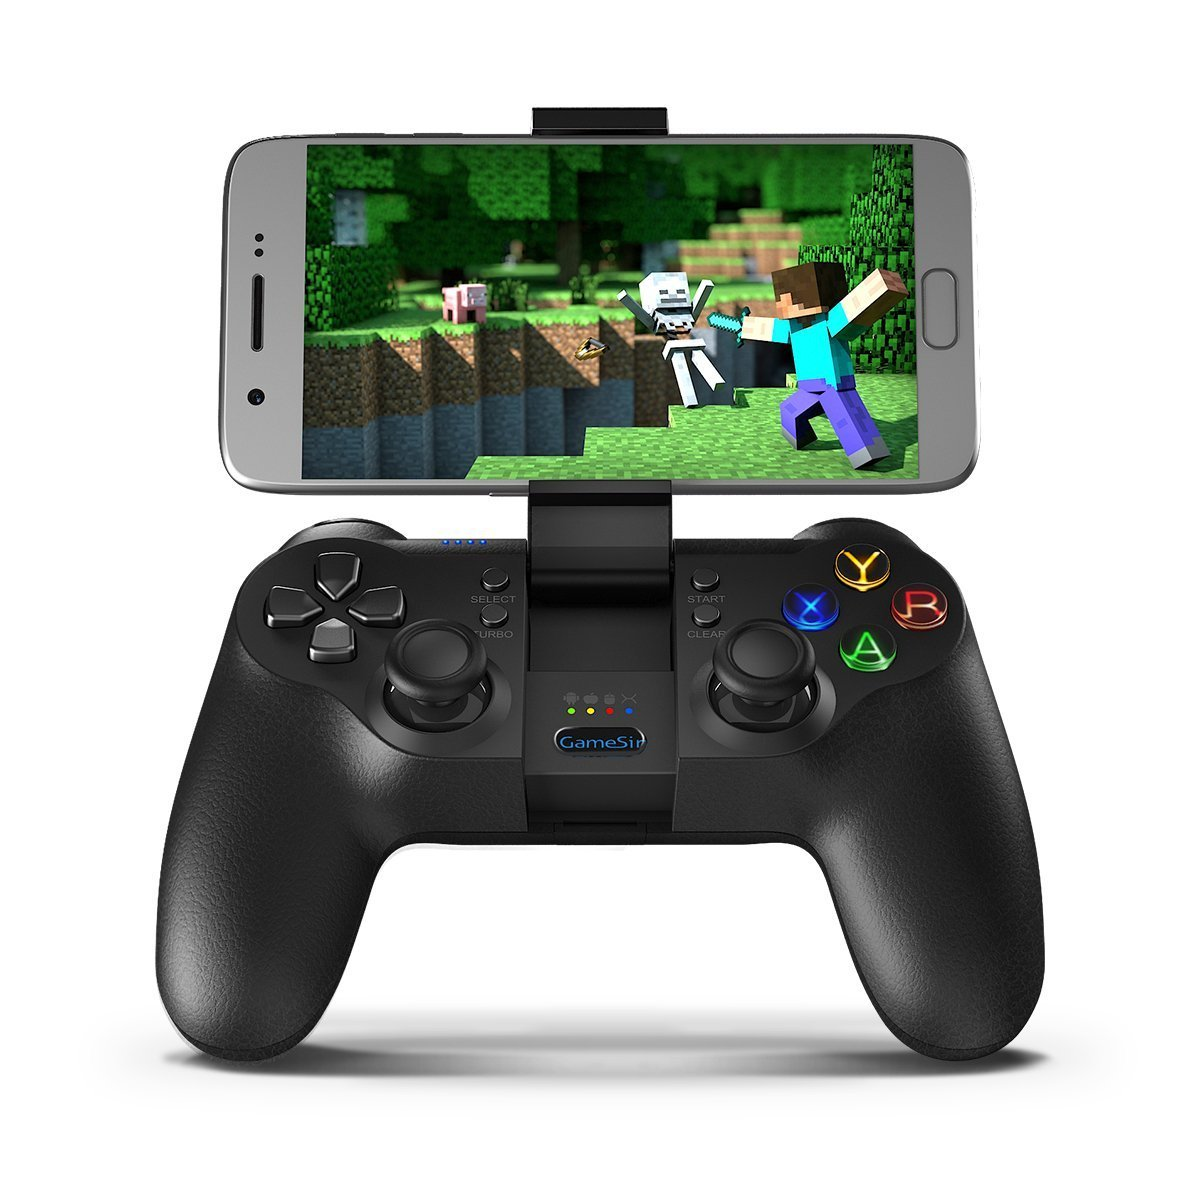 GameSir T1 Wireless Bluetooth Game Controller for Android, USB Wired Gamepad for PC, Gaming Controller for Smart TV/TV Box, PS3, Samsung Gear VR by GameSir